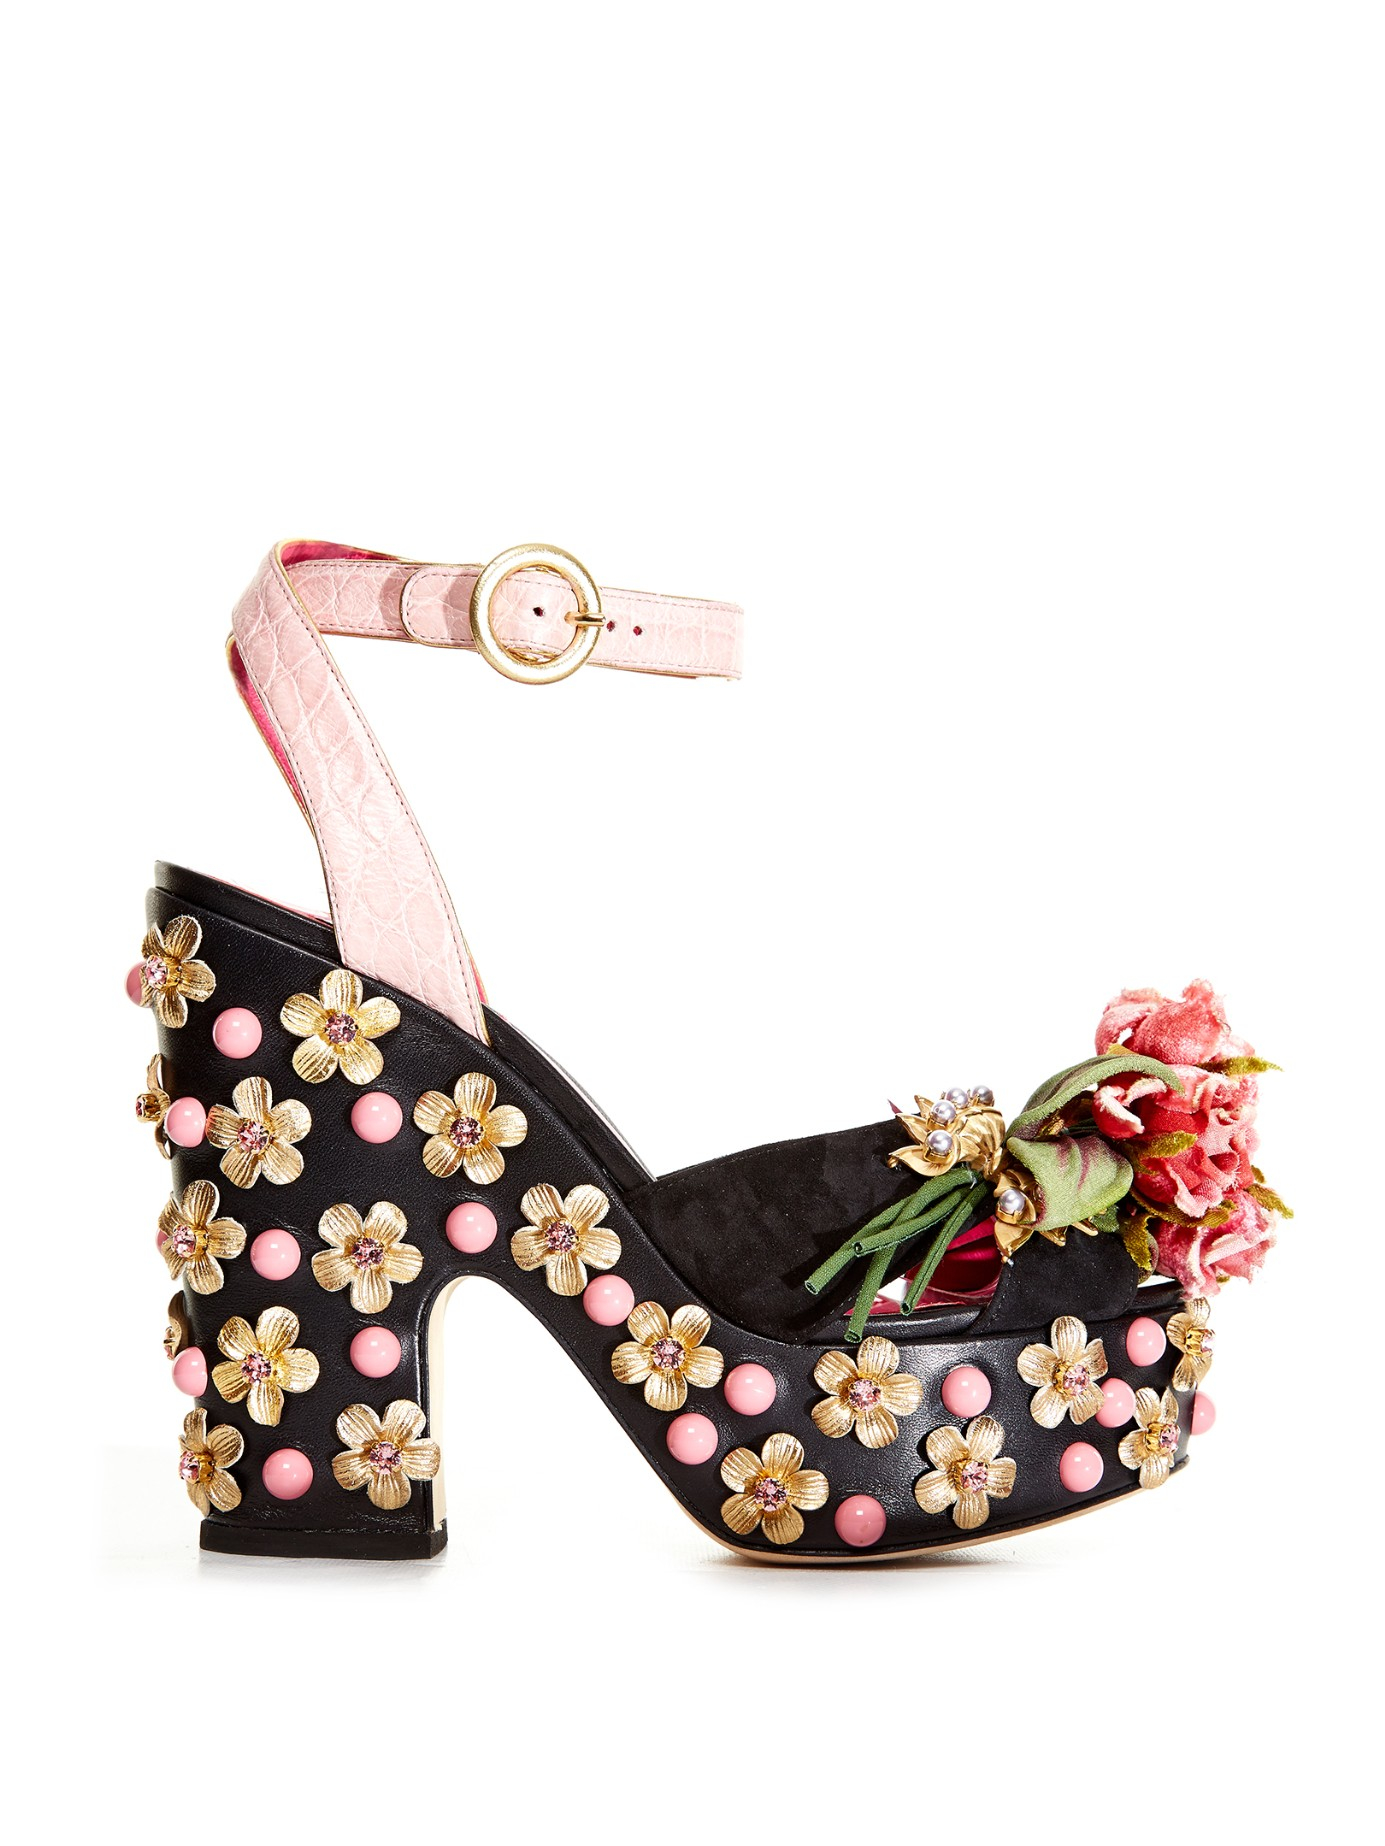 730102deb4e Dolce   Gabbana Rose Embellished Platform Sandals in Black - Lyst